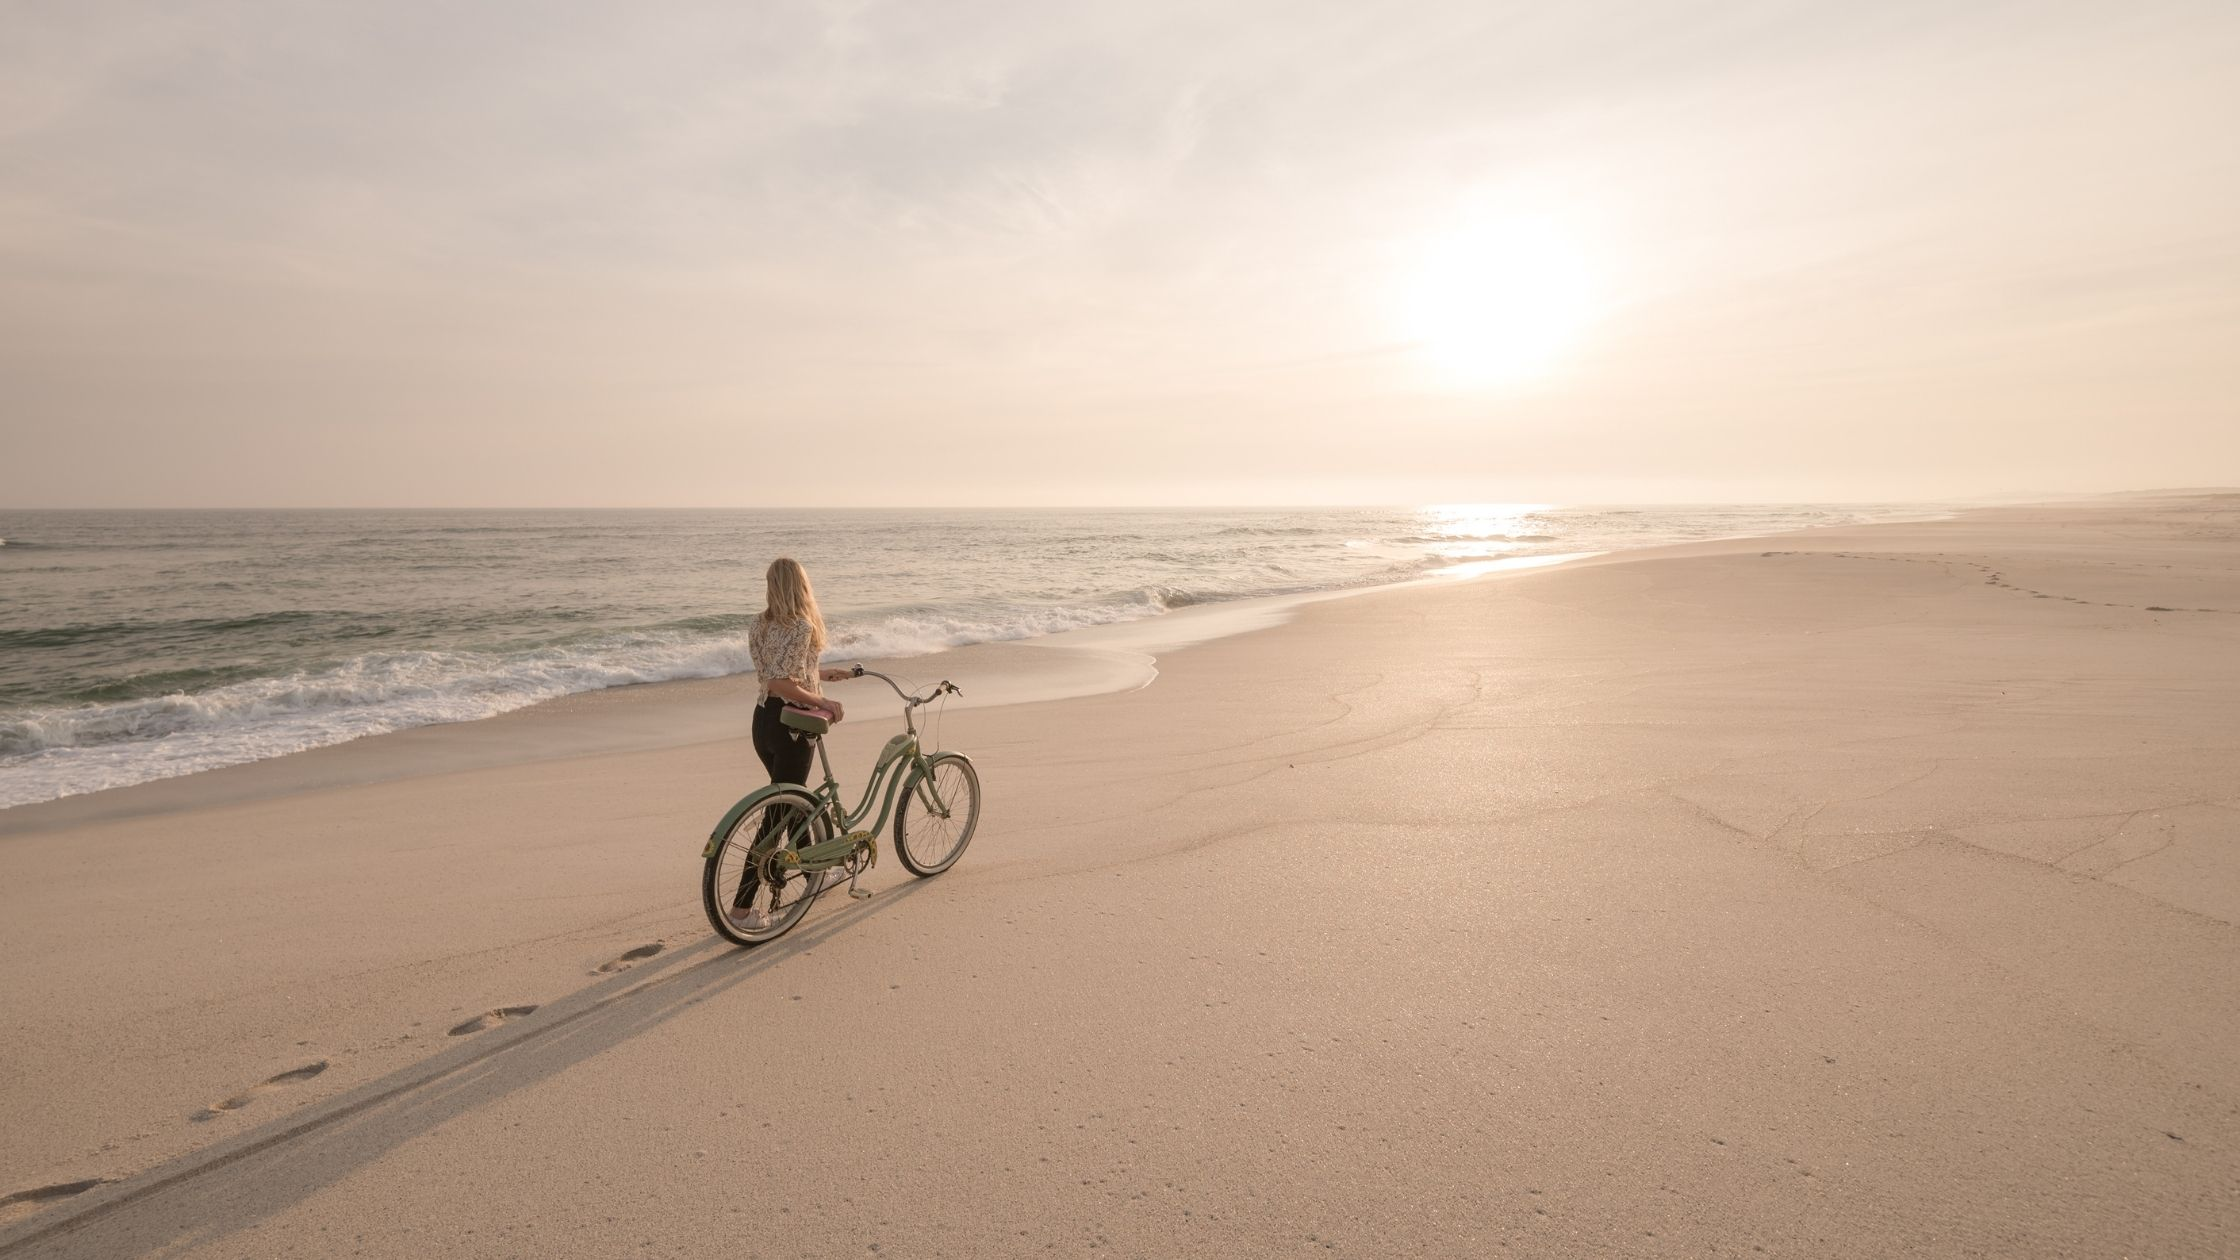 Make your Airbnb more eco friedndly by providing bikes for guests